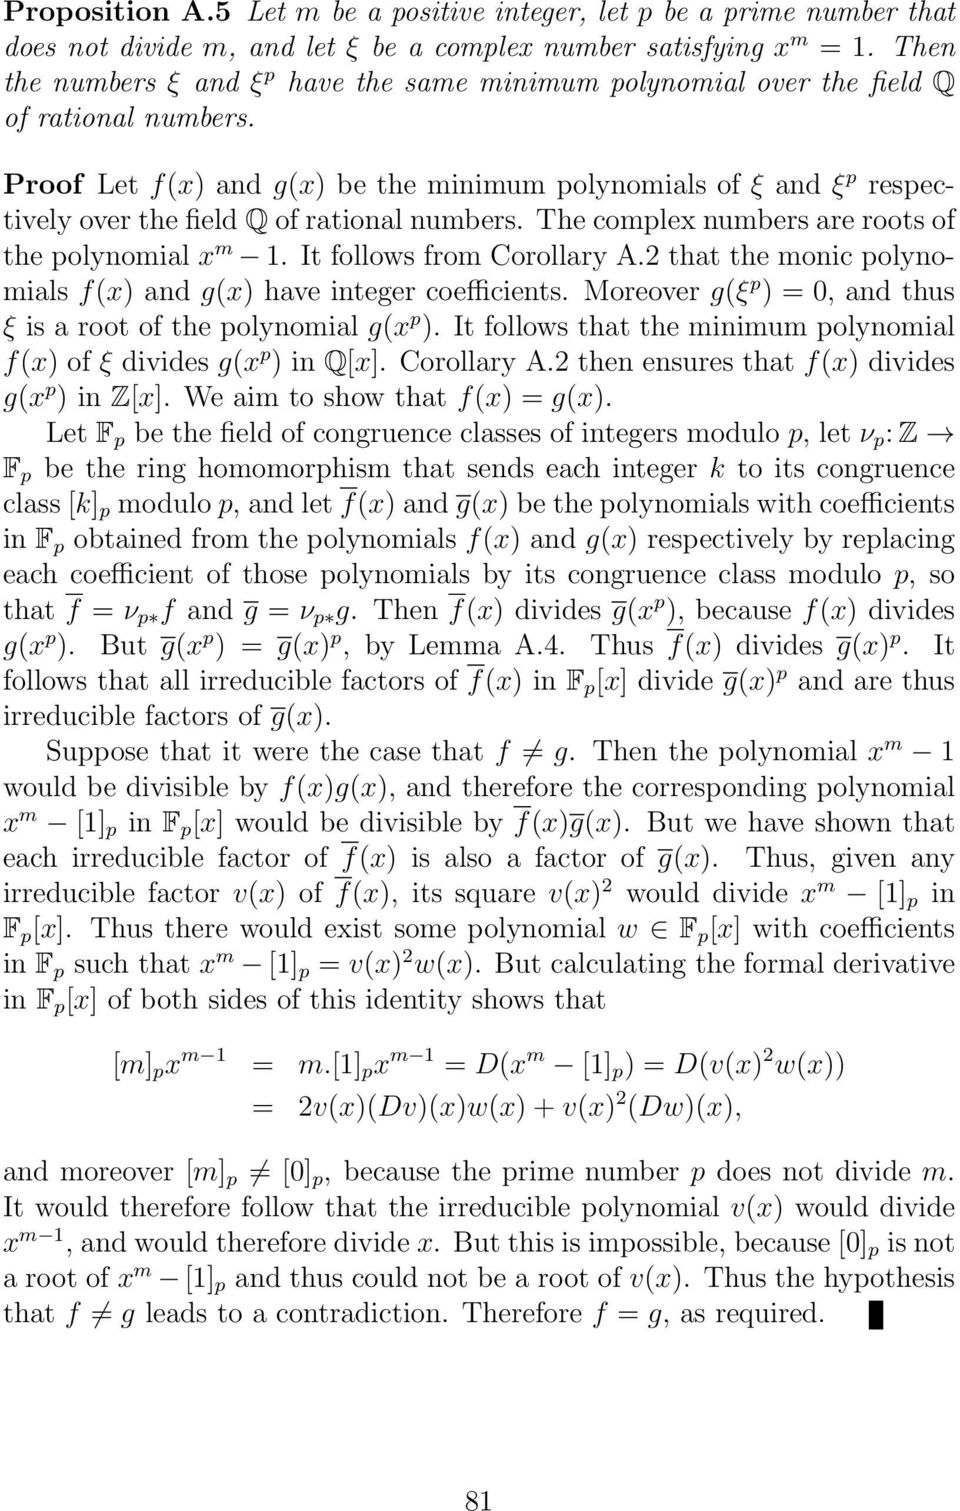 Proof Let f(x) and g(x) be the minimum polynomials of ξ and ξ p respectively over the field Q of rational numbers. The complex numbers are roots of the polynomial x m 1. It follows from Corollary A.